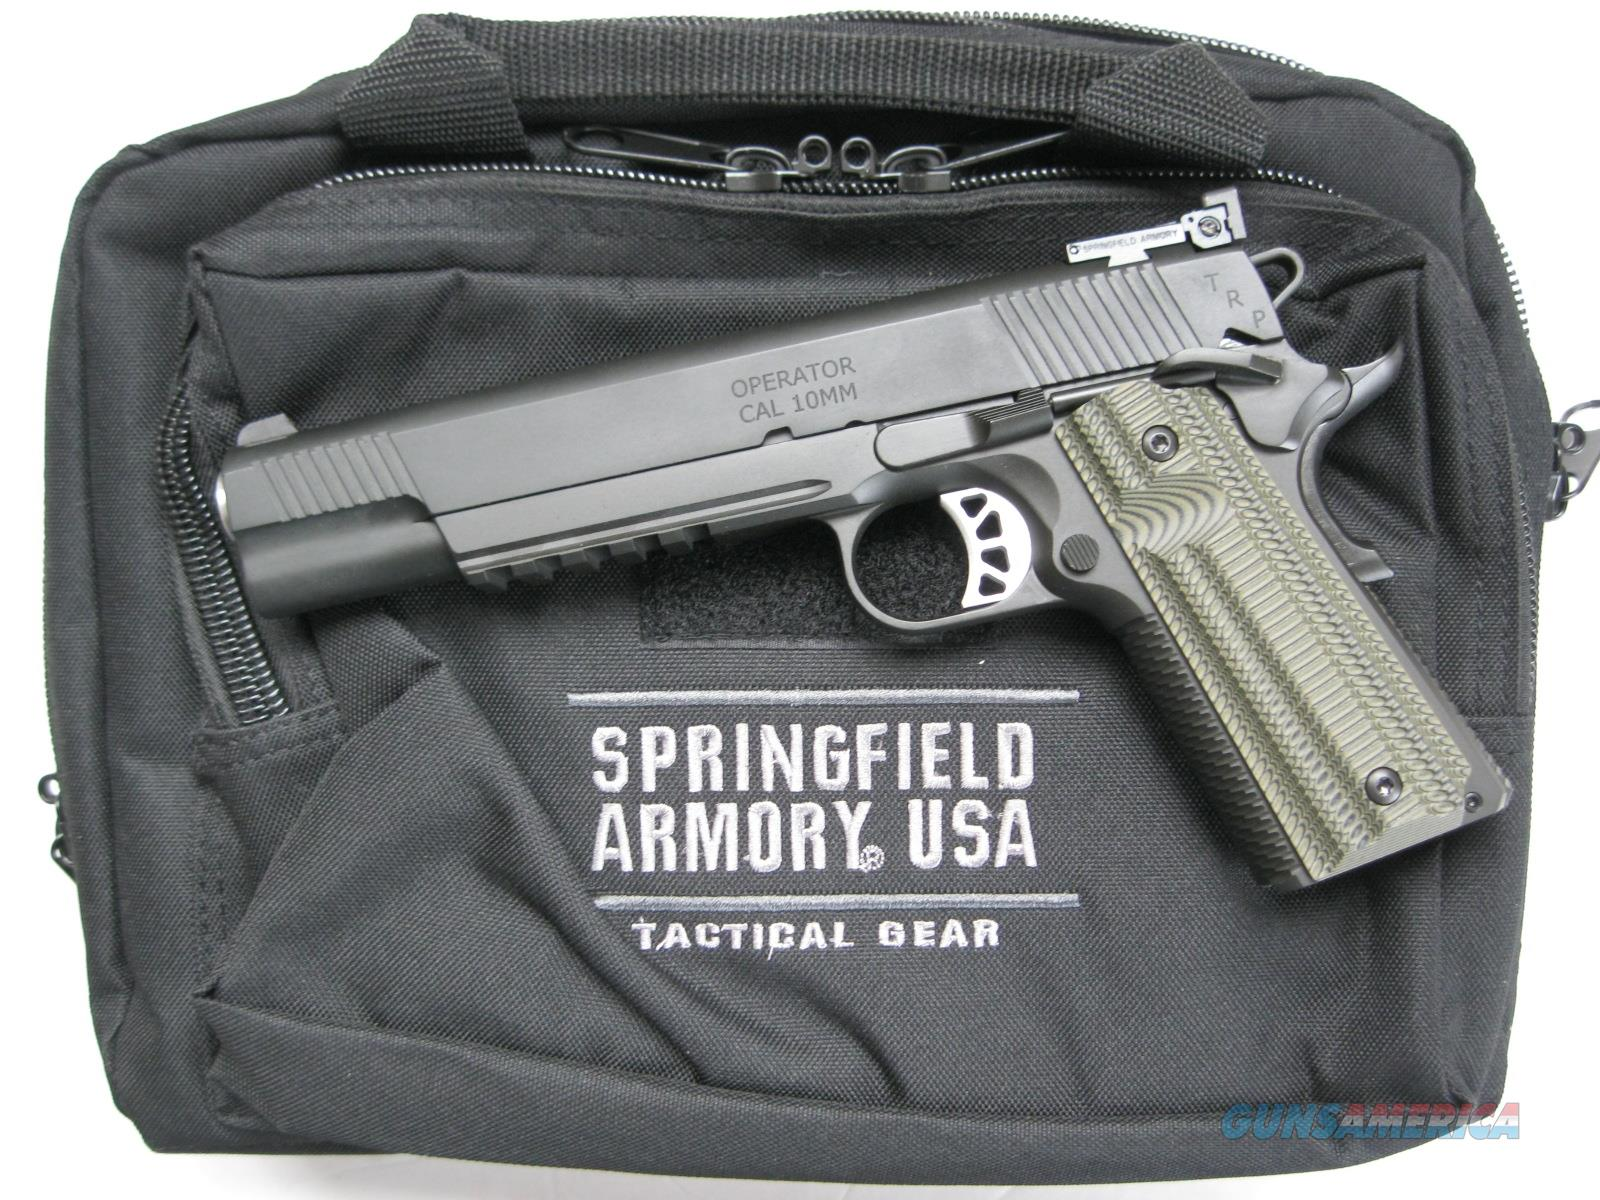 "Springfield TRP Operator 10mm Long Slide 6"" Night Sights Rail PC9610L18 *NEW*  Guns > Pistols > Springfield Armory Pistols > 1911 Type"